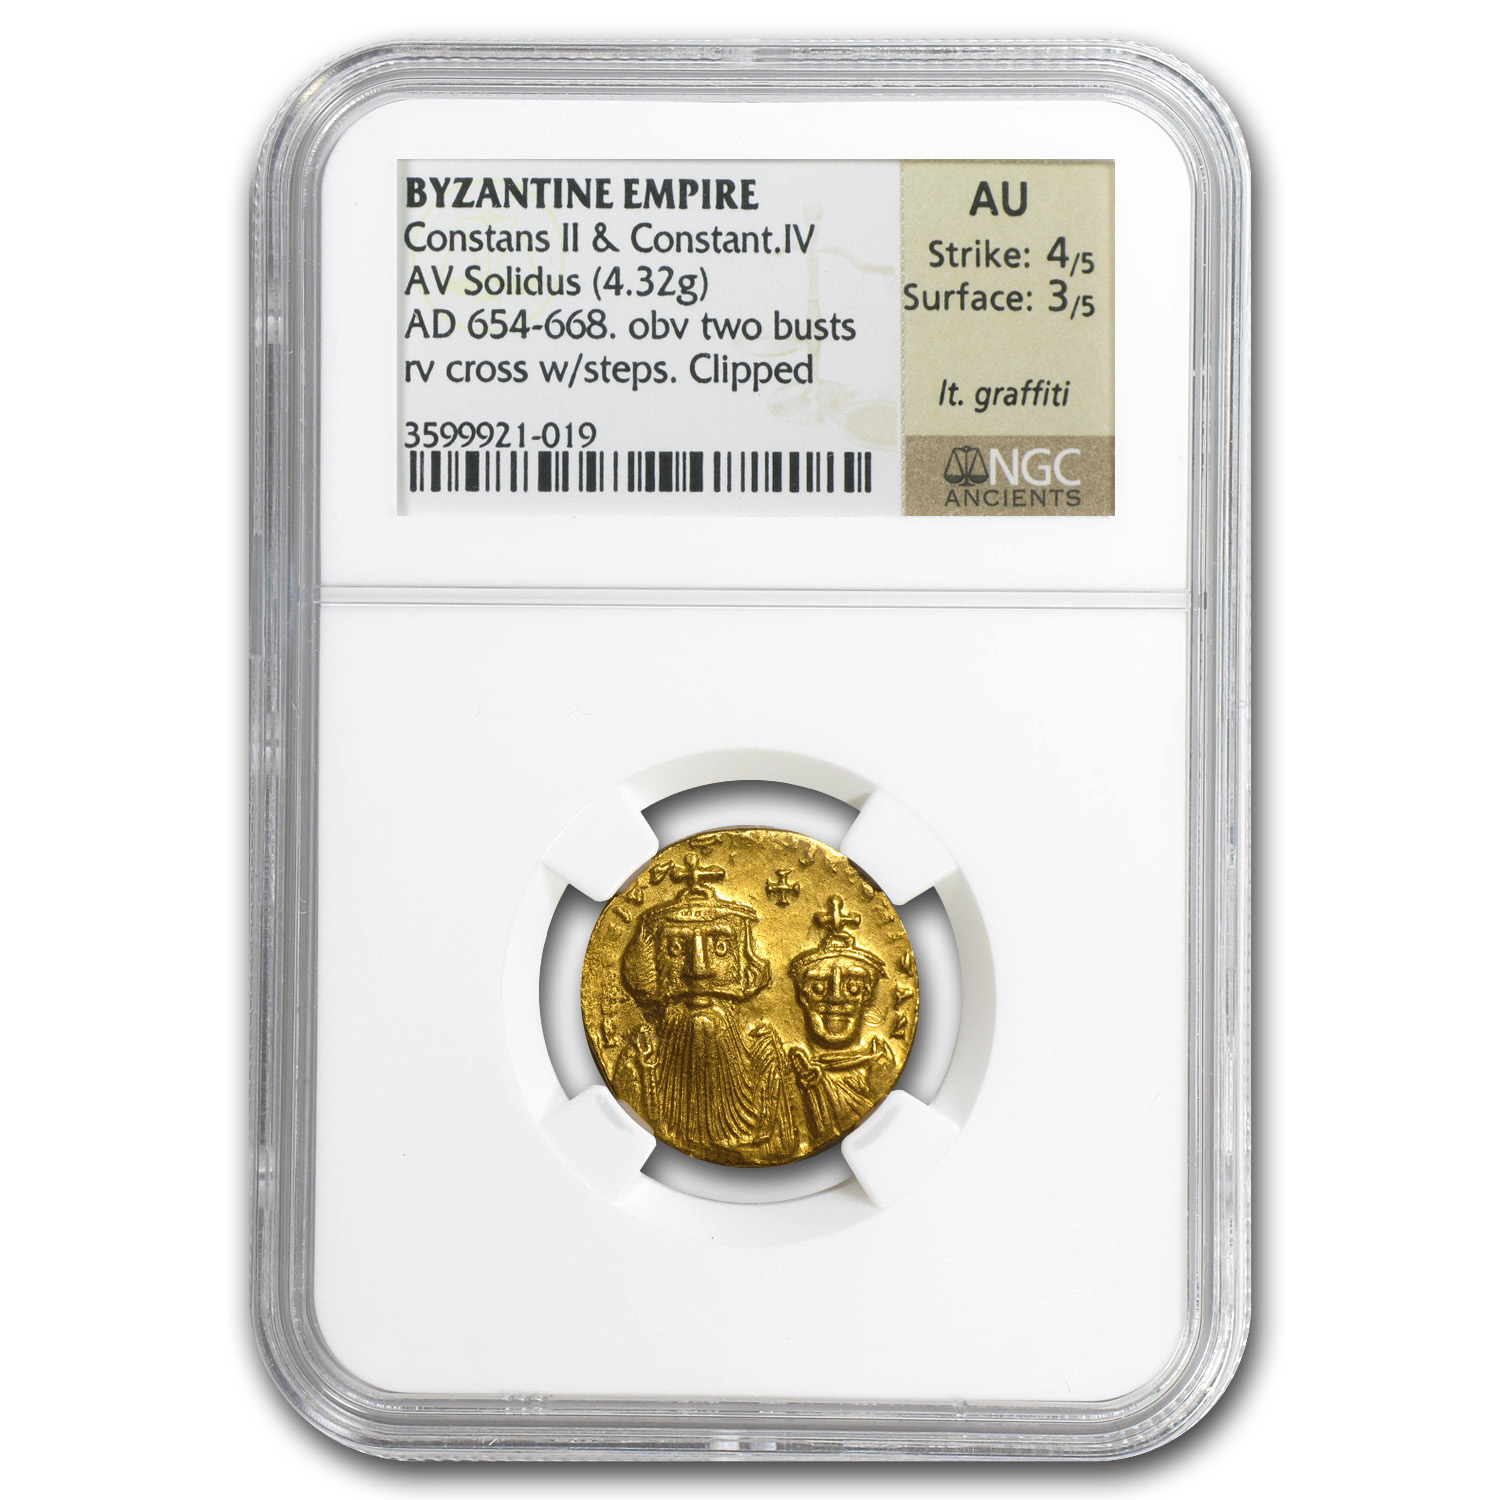 Byzantine Gold Constans II, Constant. IV AU NGC (654-668 AD)